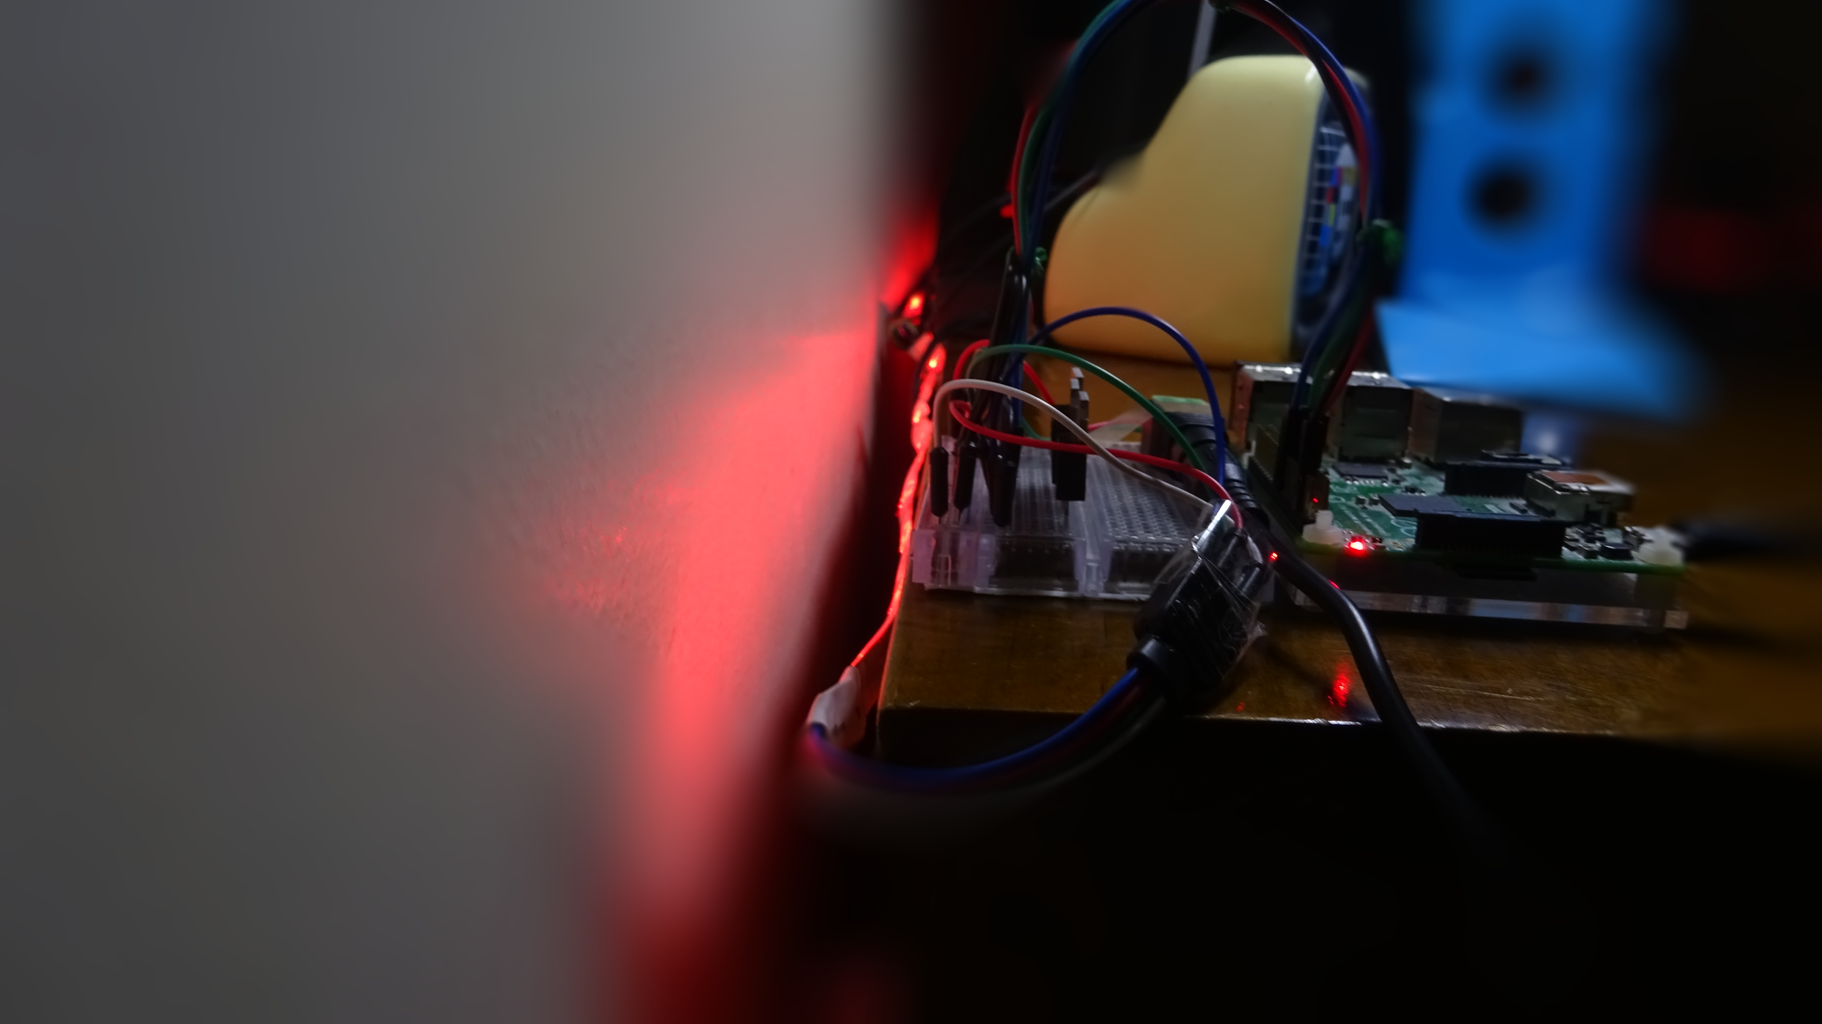 Wifi Controlled 12v Led Strip Using Raspberry Pi With Tasker, Ifttt Integration.